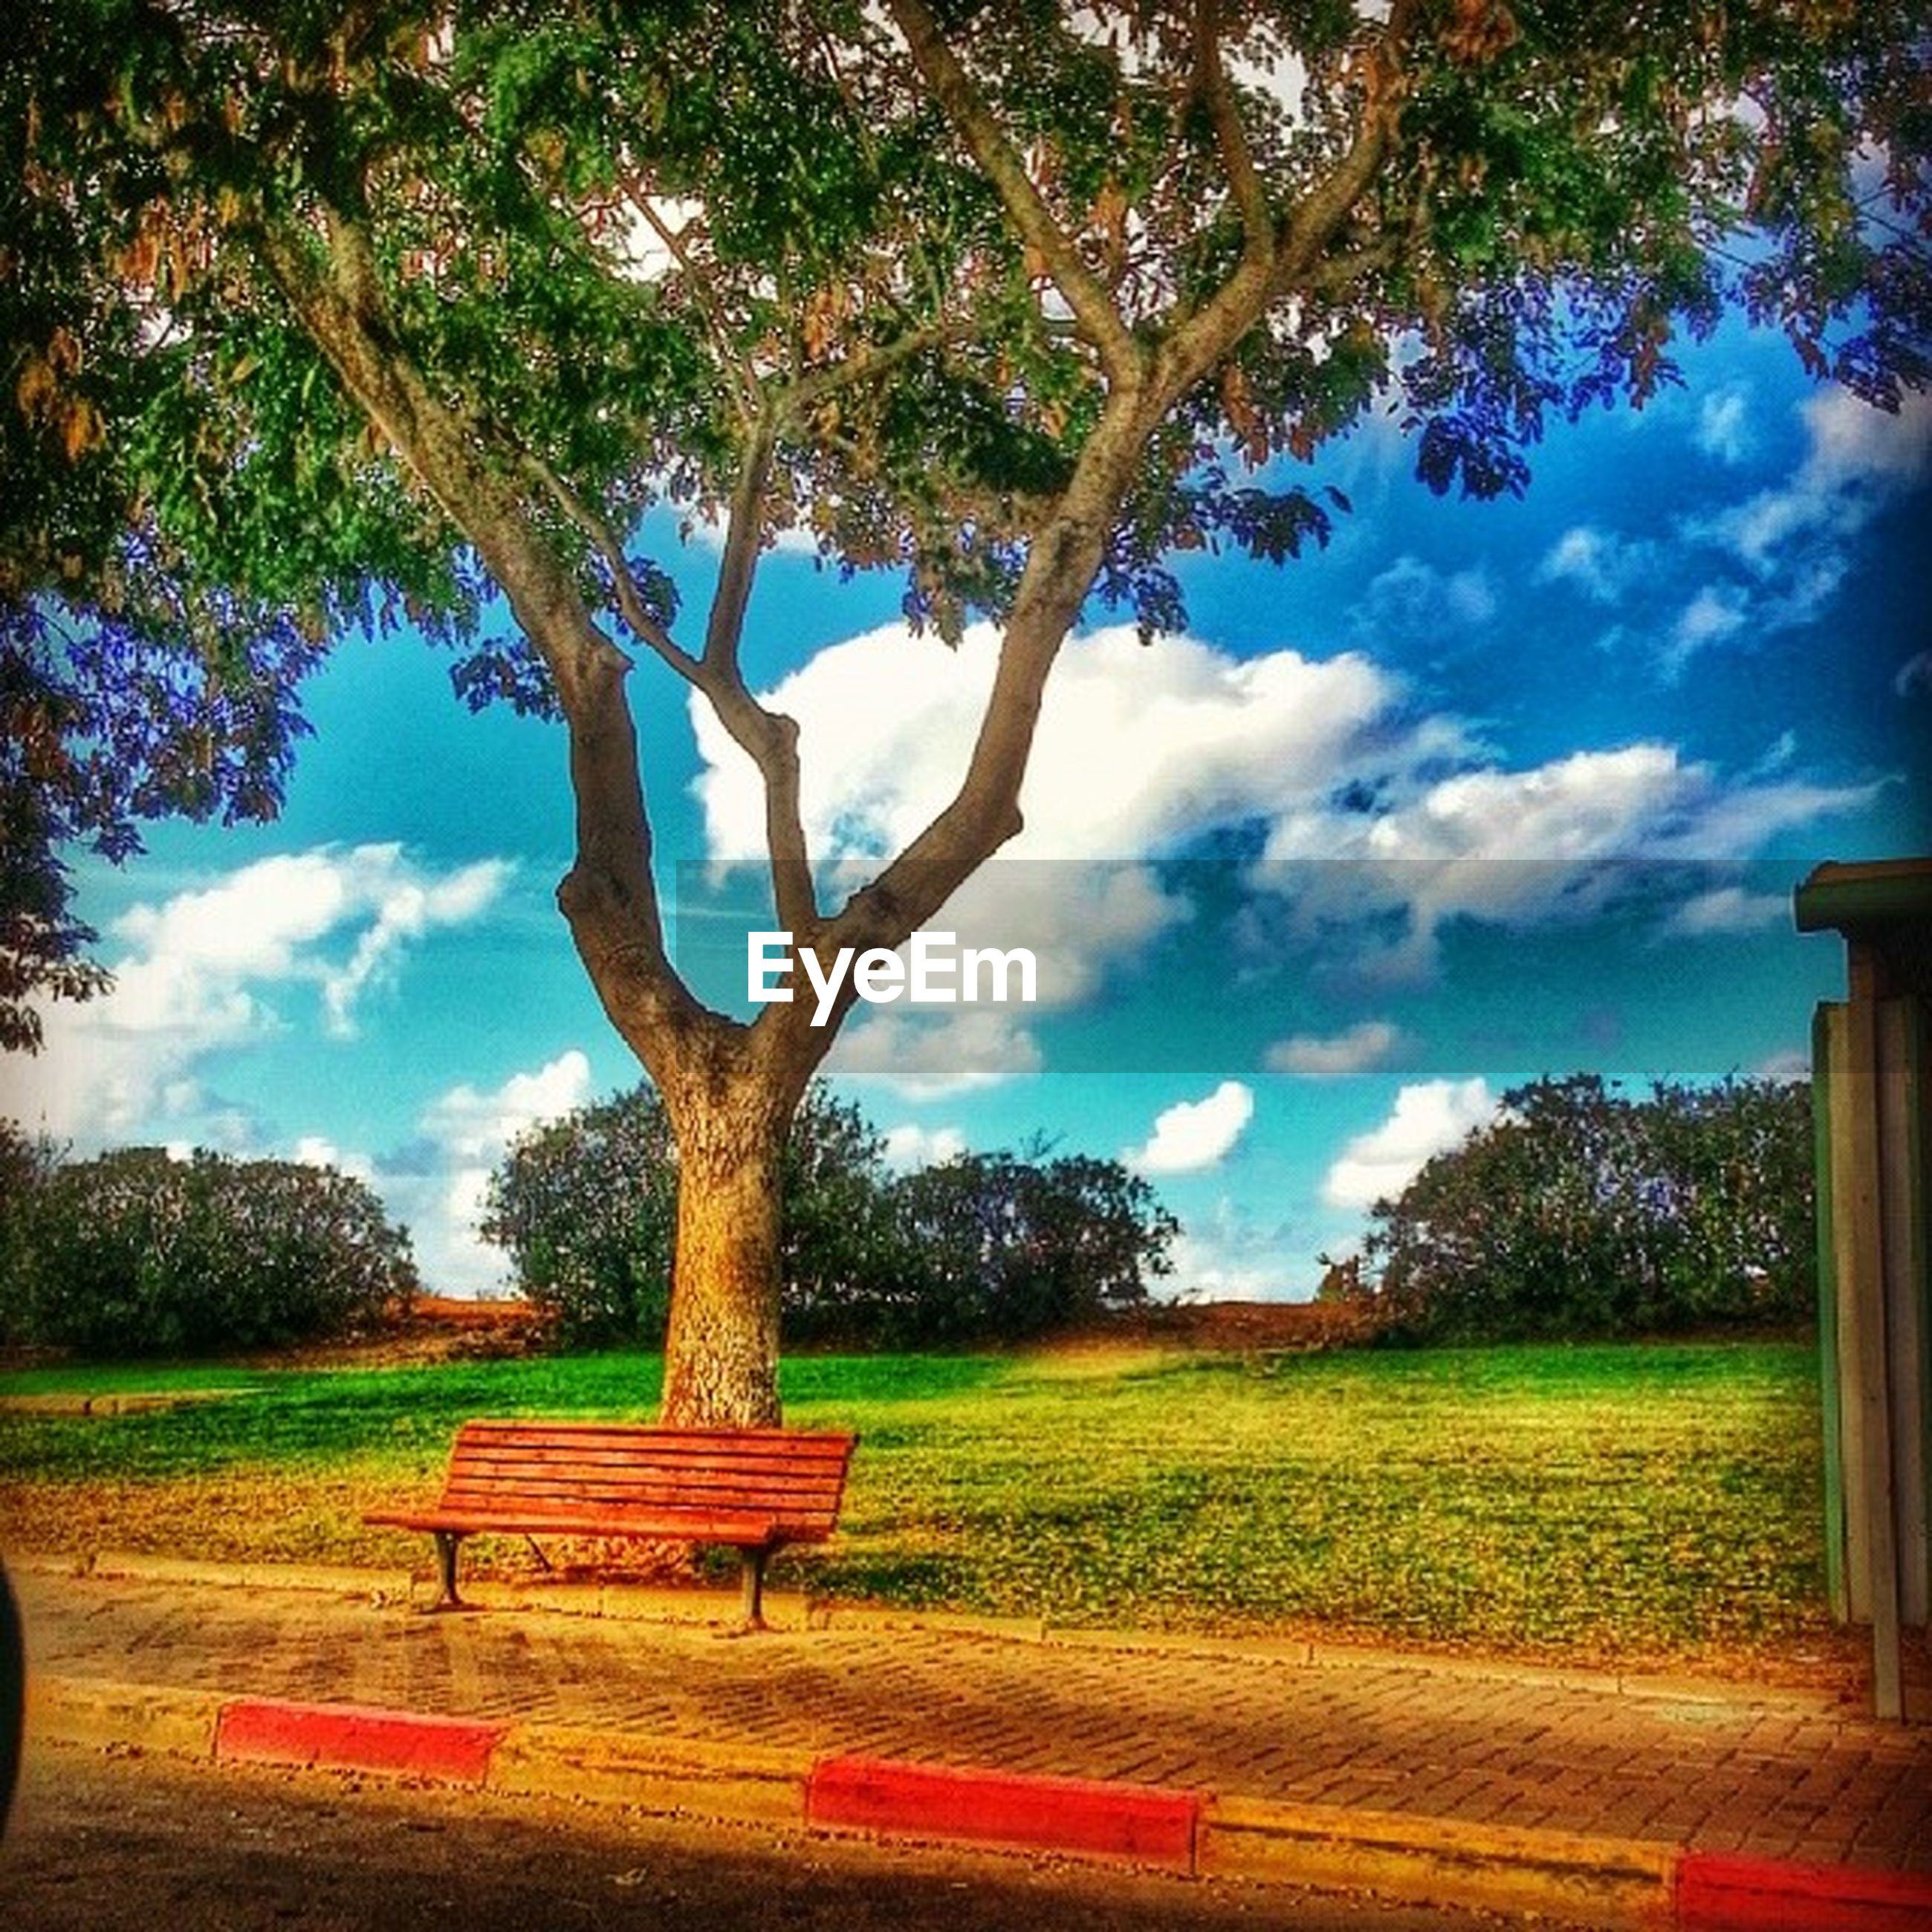 tree, grass, bench, tranquility, sky, field, tranquil scene, park - man made space, nature, growth, absence, empty, landscape, beauty in nature, scenics, park bench, sunlight, branch, cloud - sky, tree trunk